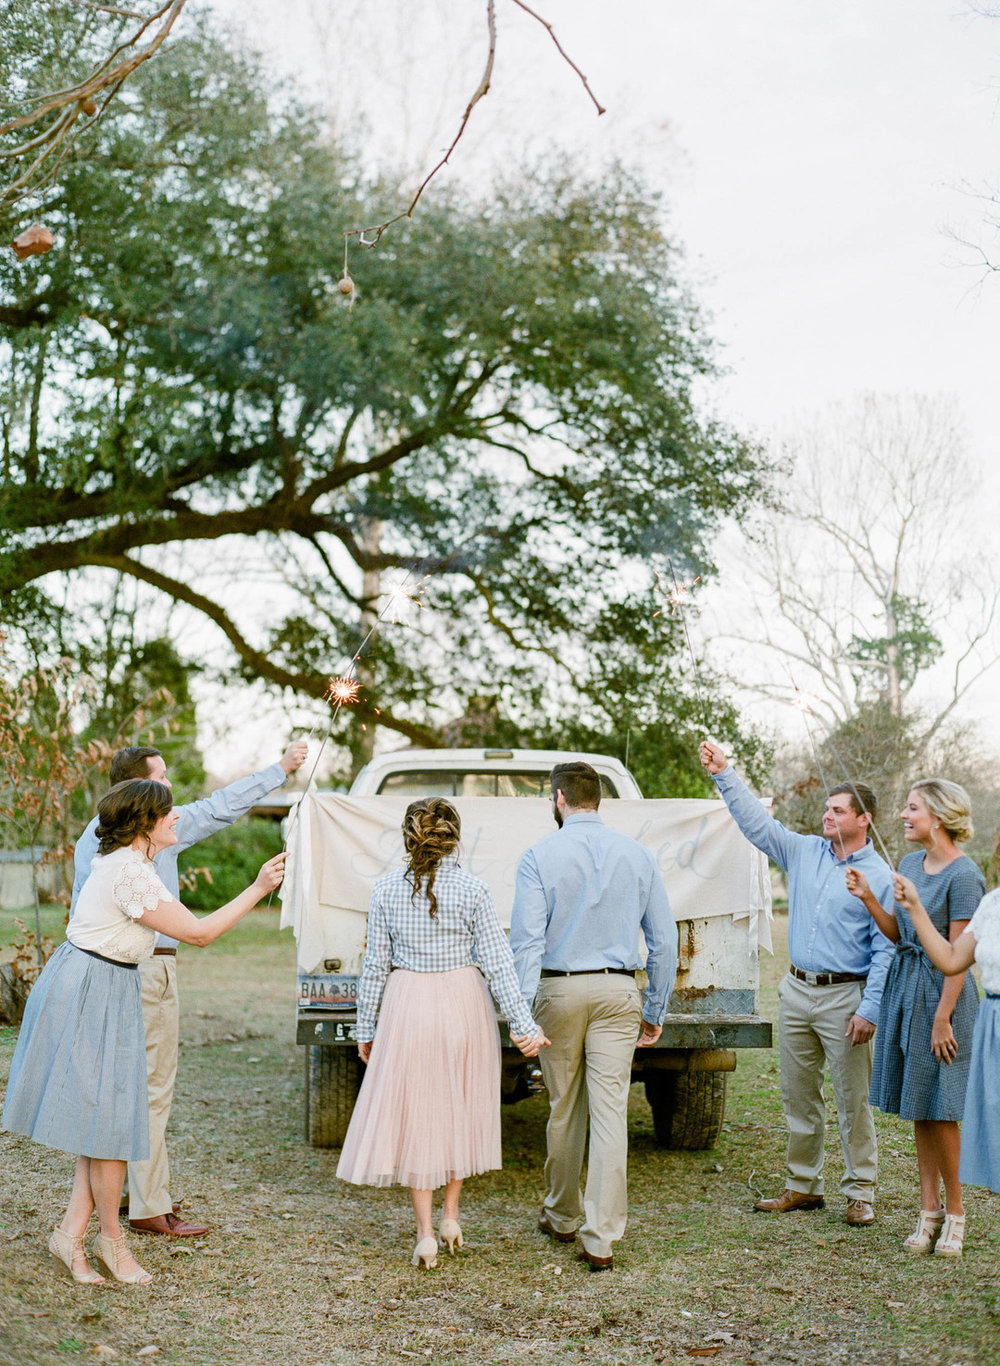 south-carolina-wedding-inspiration-48.jpg